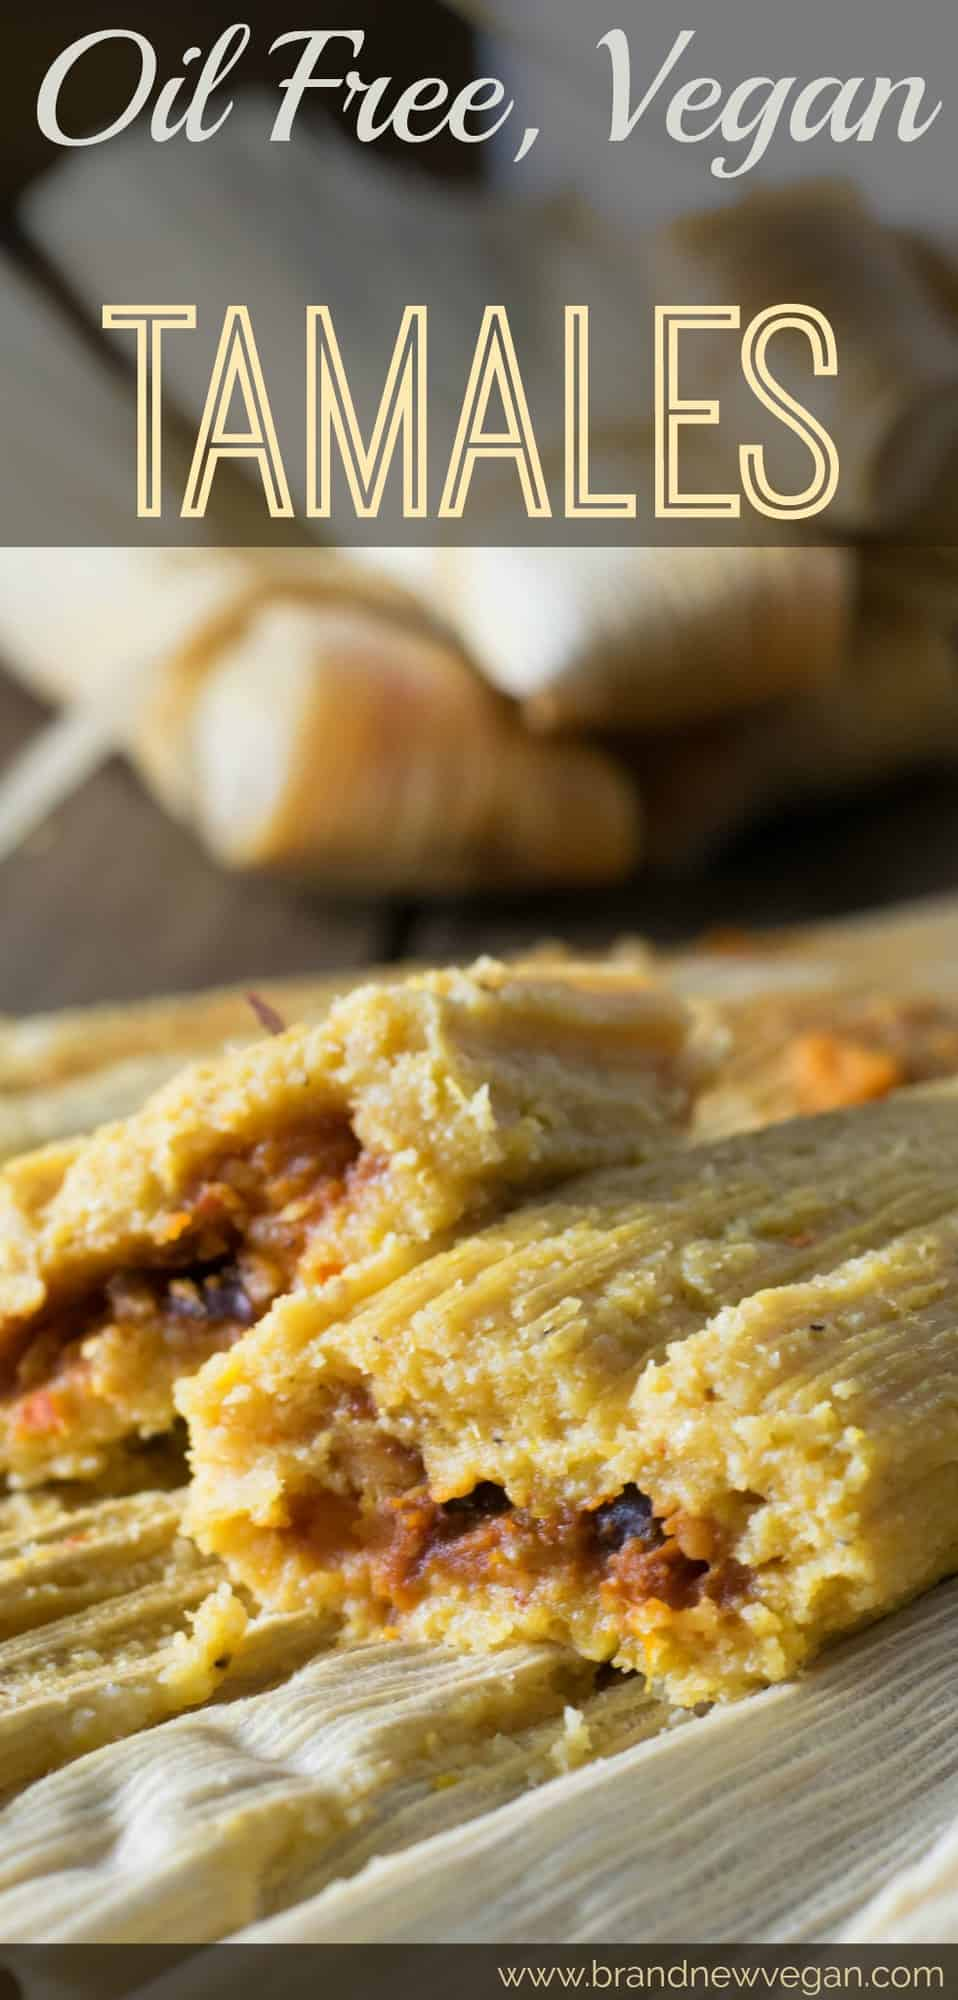 This year, I decided to make some homemade Tamales, and let me just say ... theseOil Free Vegan Tamaleswill definitely melt in your mouth and become a new holiday tradition!